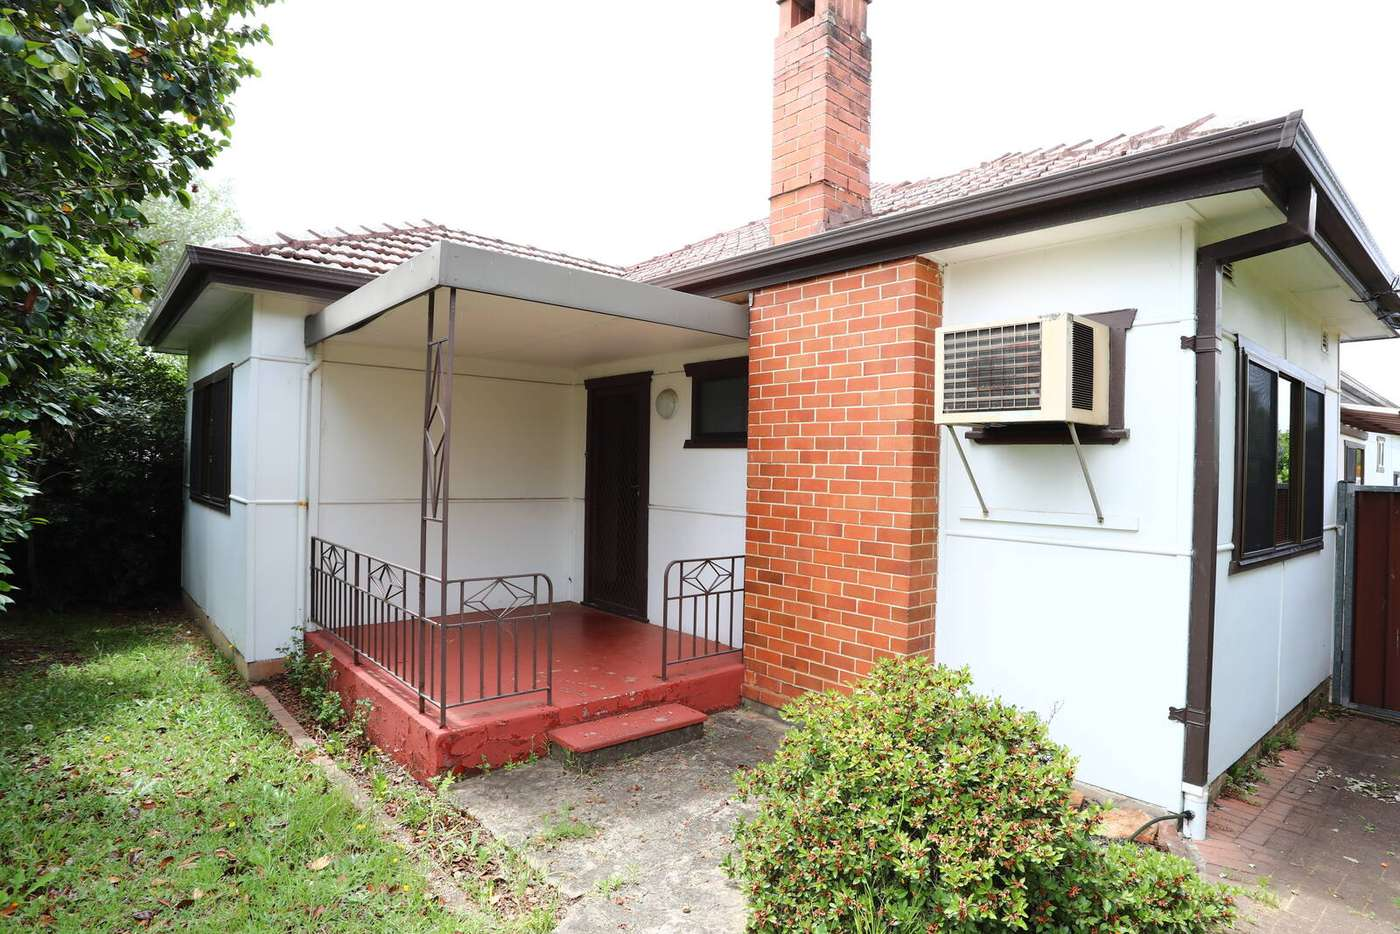 Main view of Homely house listing, 22 Raymond Ave, Northmead NSW 2152